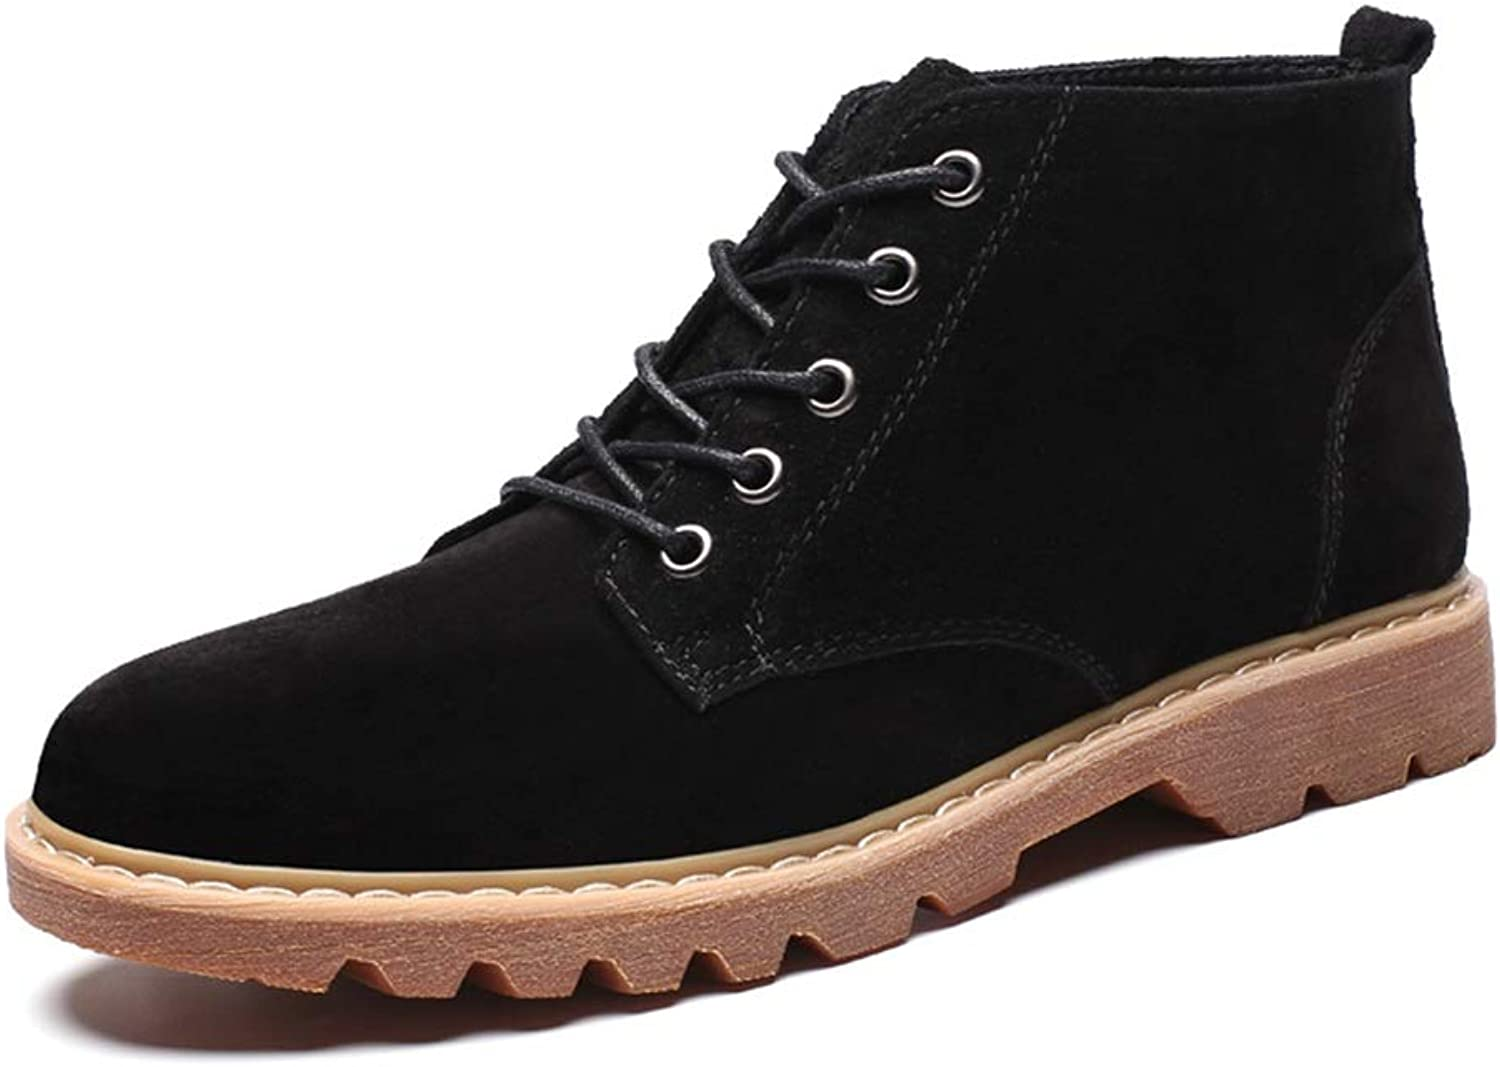 Xujw-shoes Men's Fashion Casual Ankle Work Boot Simple and Comfortable Classic Big Size High Top Leisure Boot